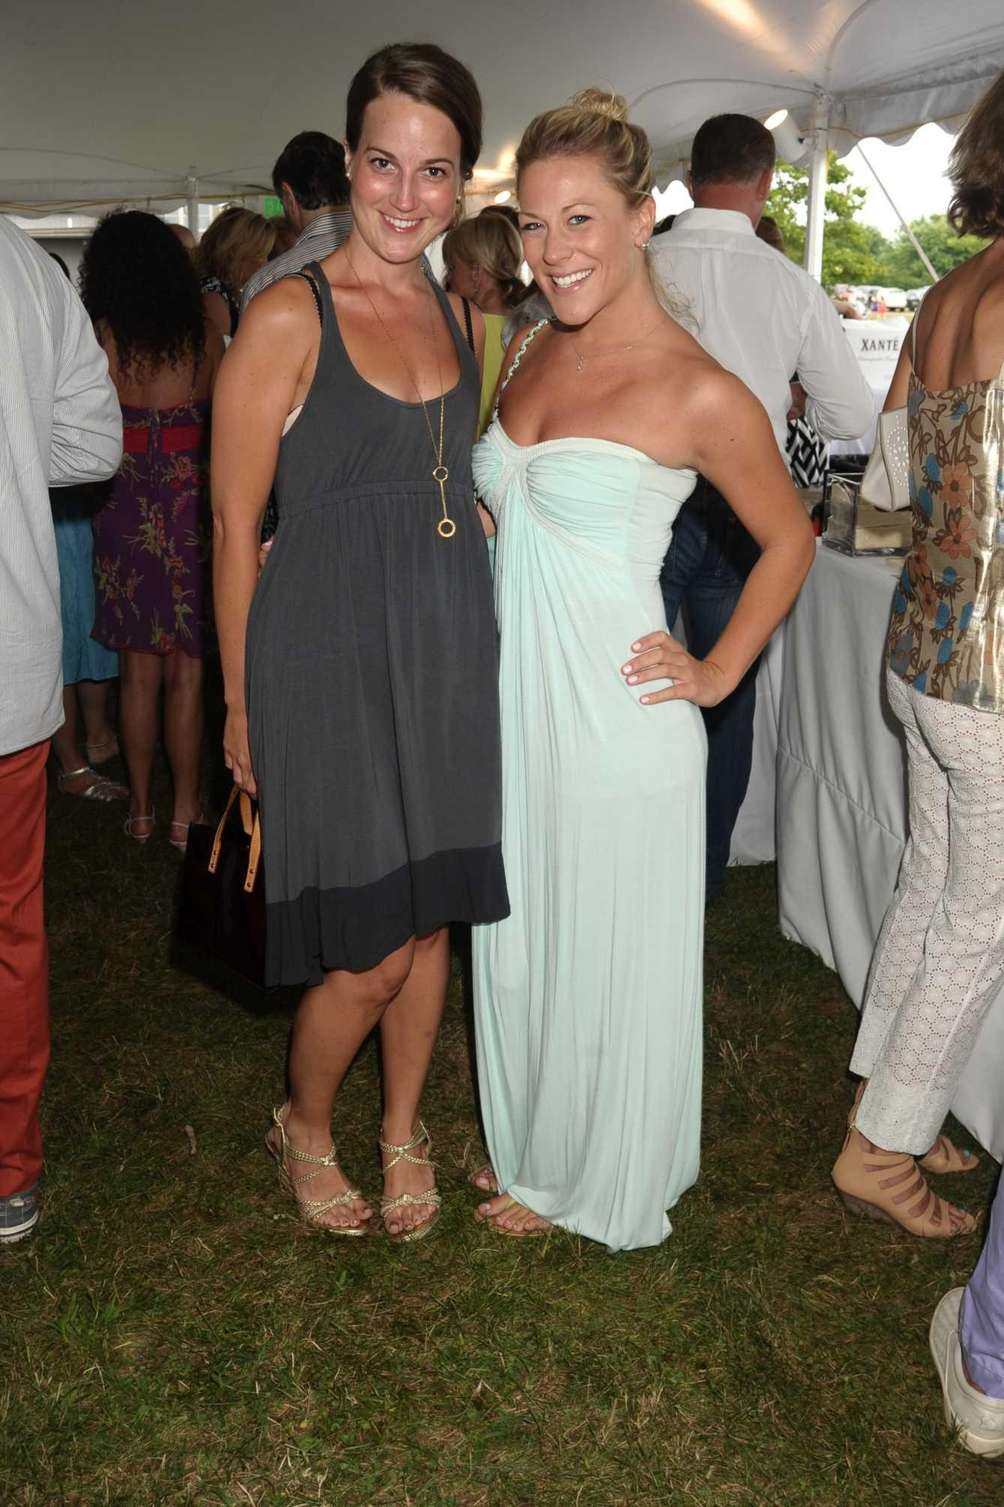 Ashley Boer and Meredith Shumway attend the 2013